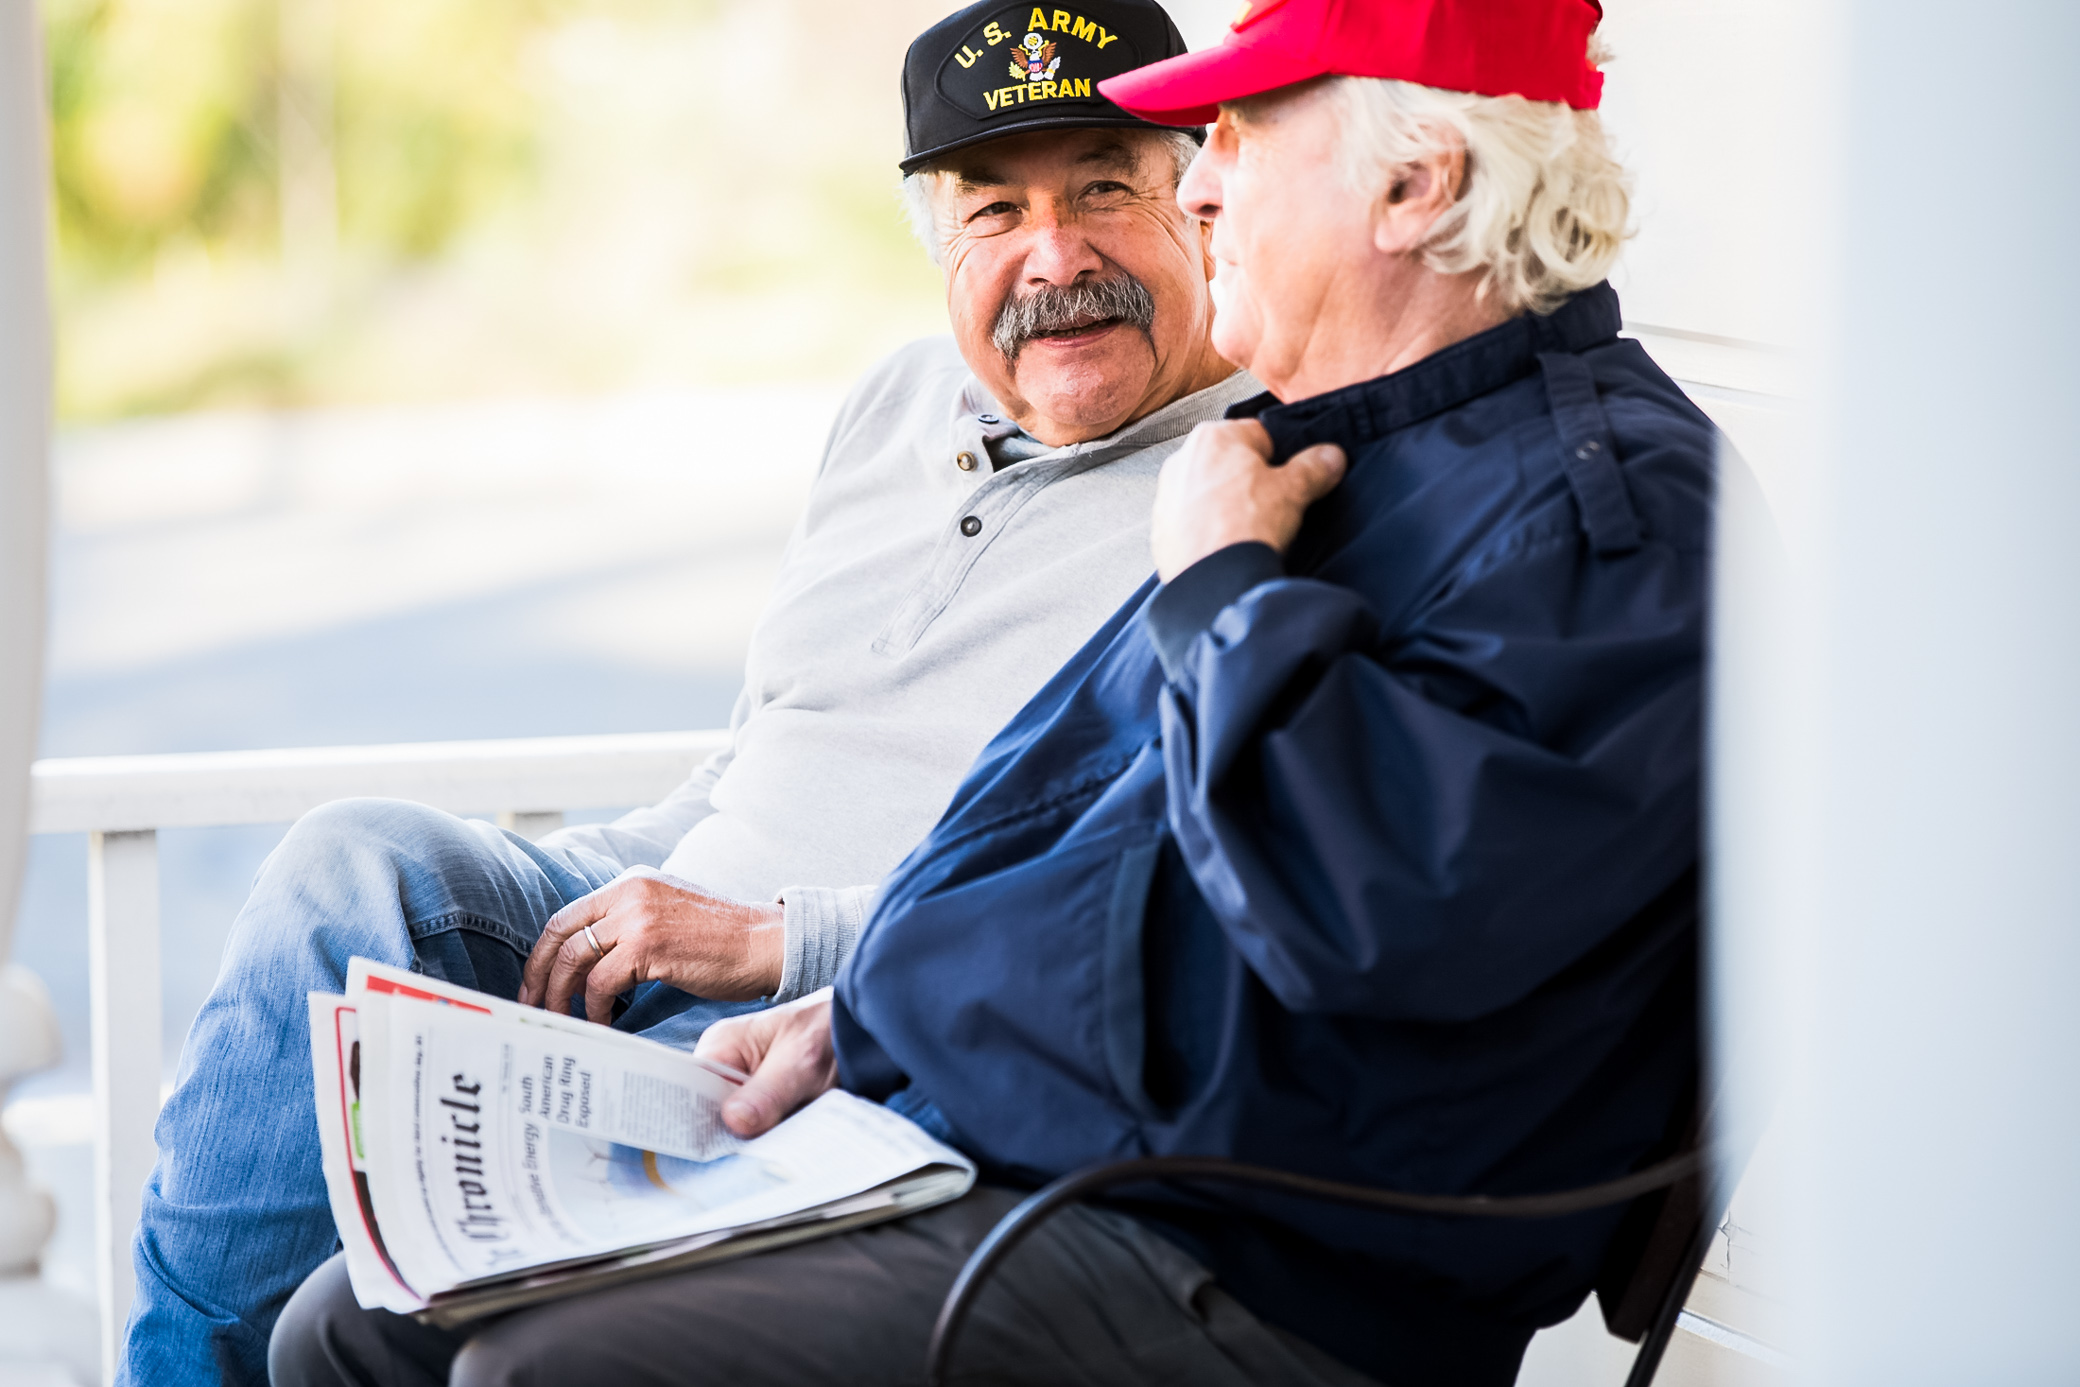 EL_5_ENTERPRISE_14_Veterans_018.jpg